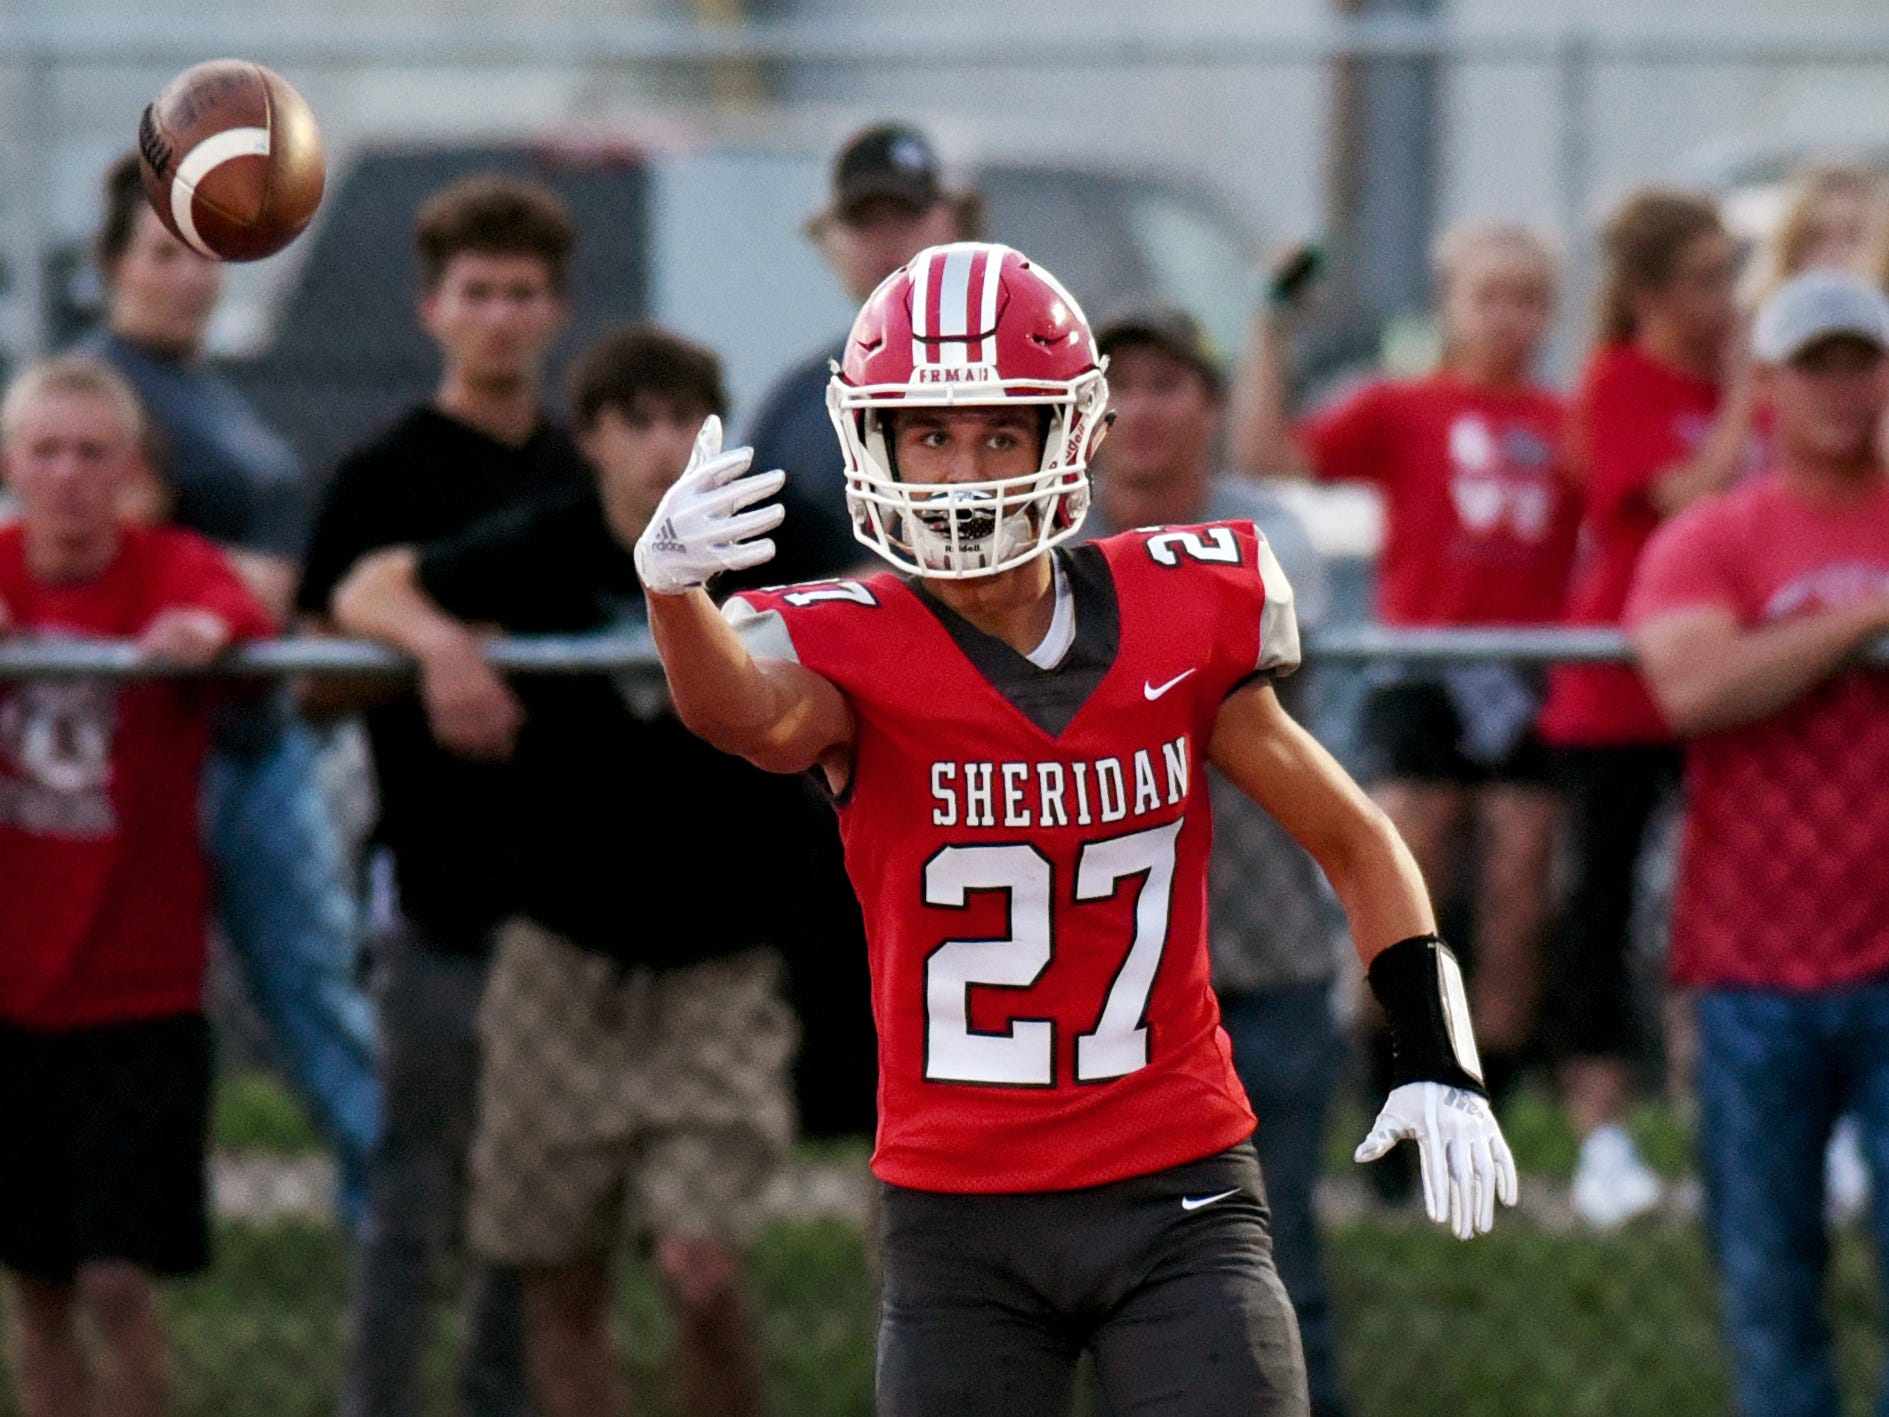 Sheridan's wide receiver Jacob Rhodes flips the ball to an official after catching a 30-yard touchdown pass in the game against John Glenn. This week the unbeaten Generals will start a tough three-game stretch by hosting Philo to headline the Muskingum Valley League slate.